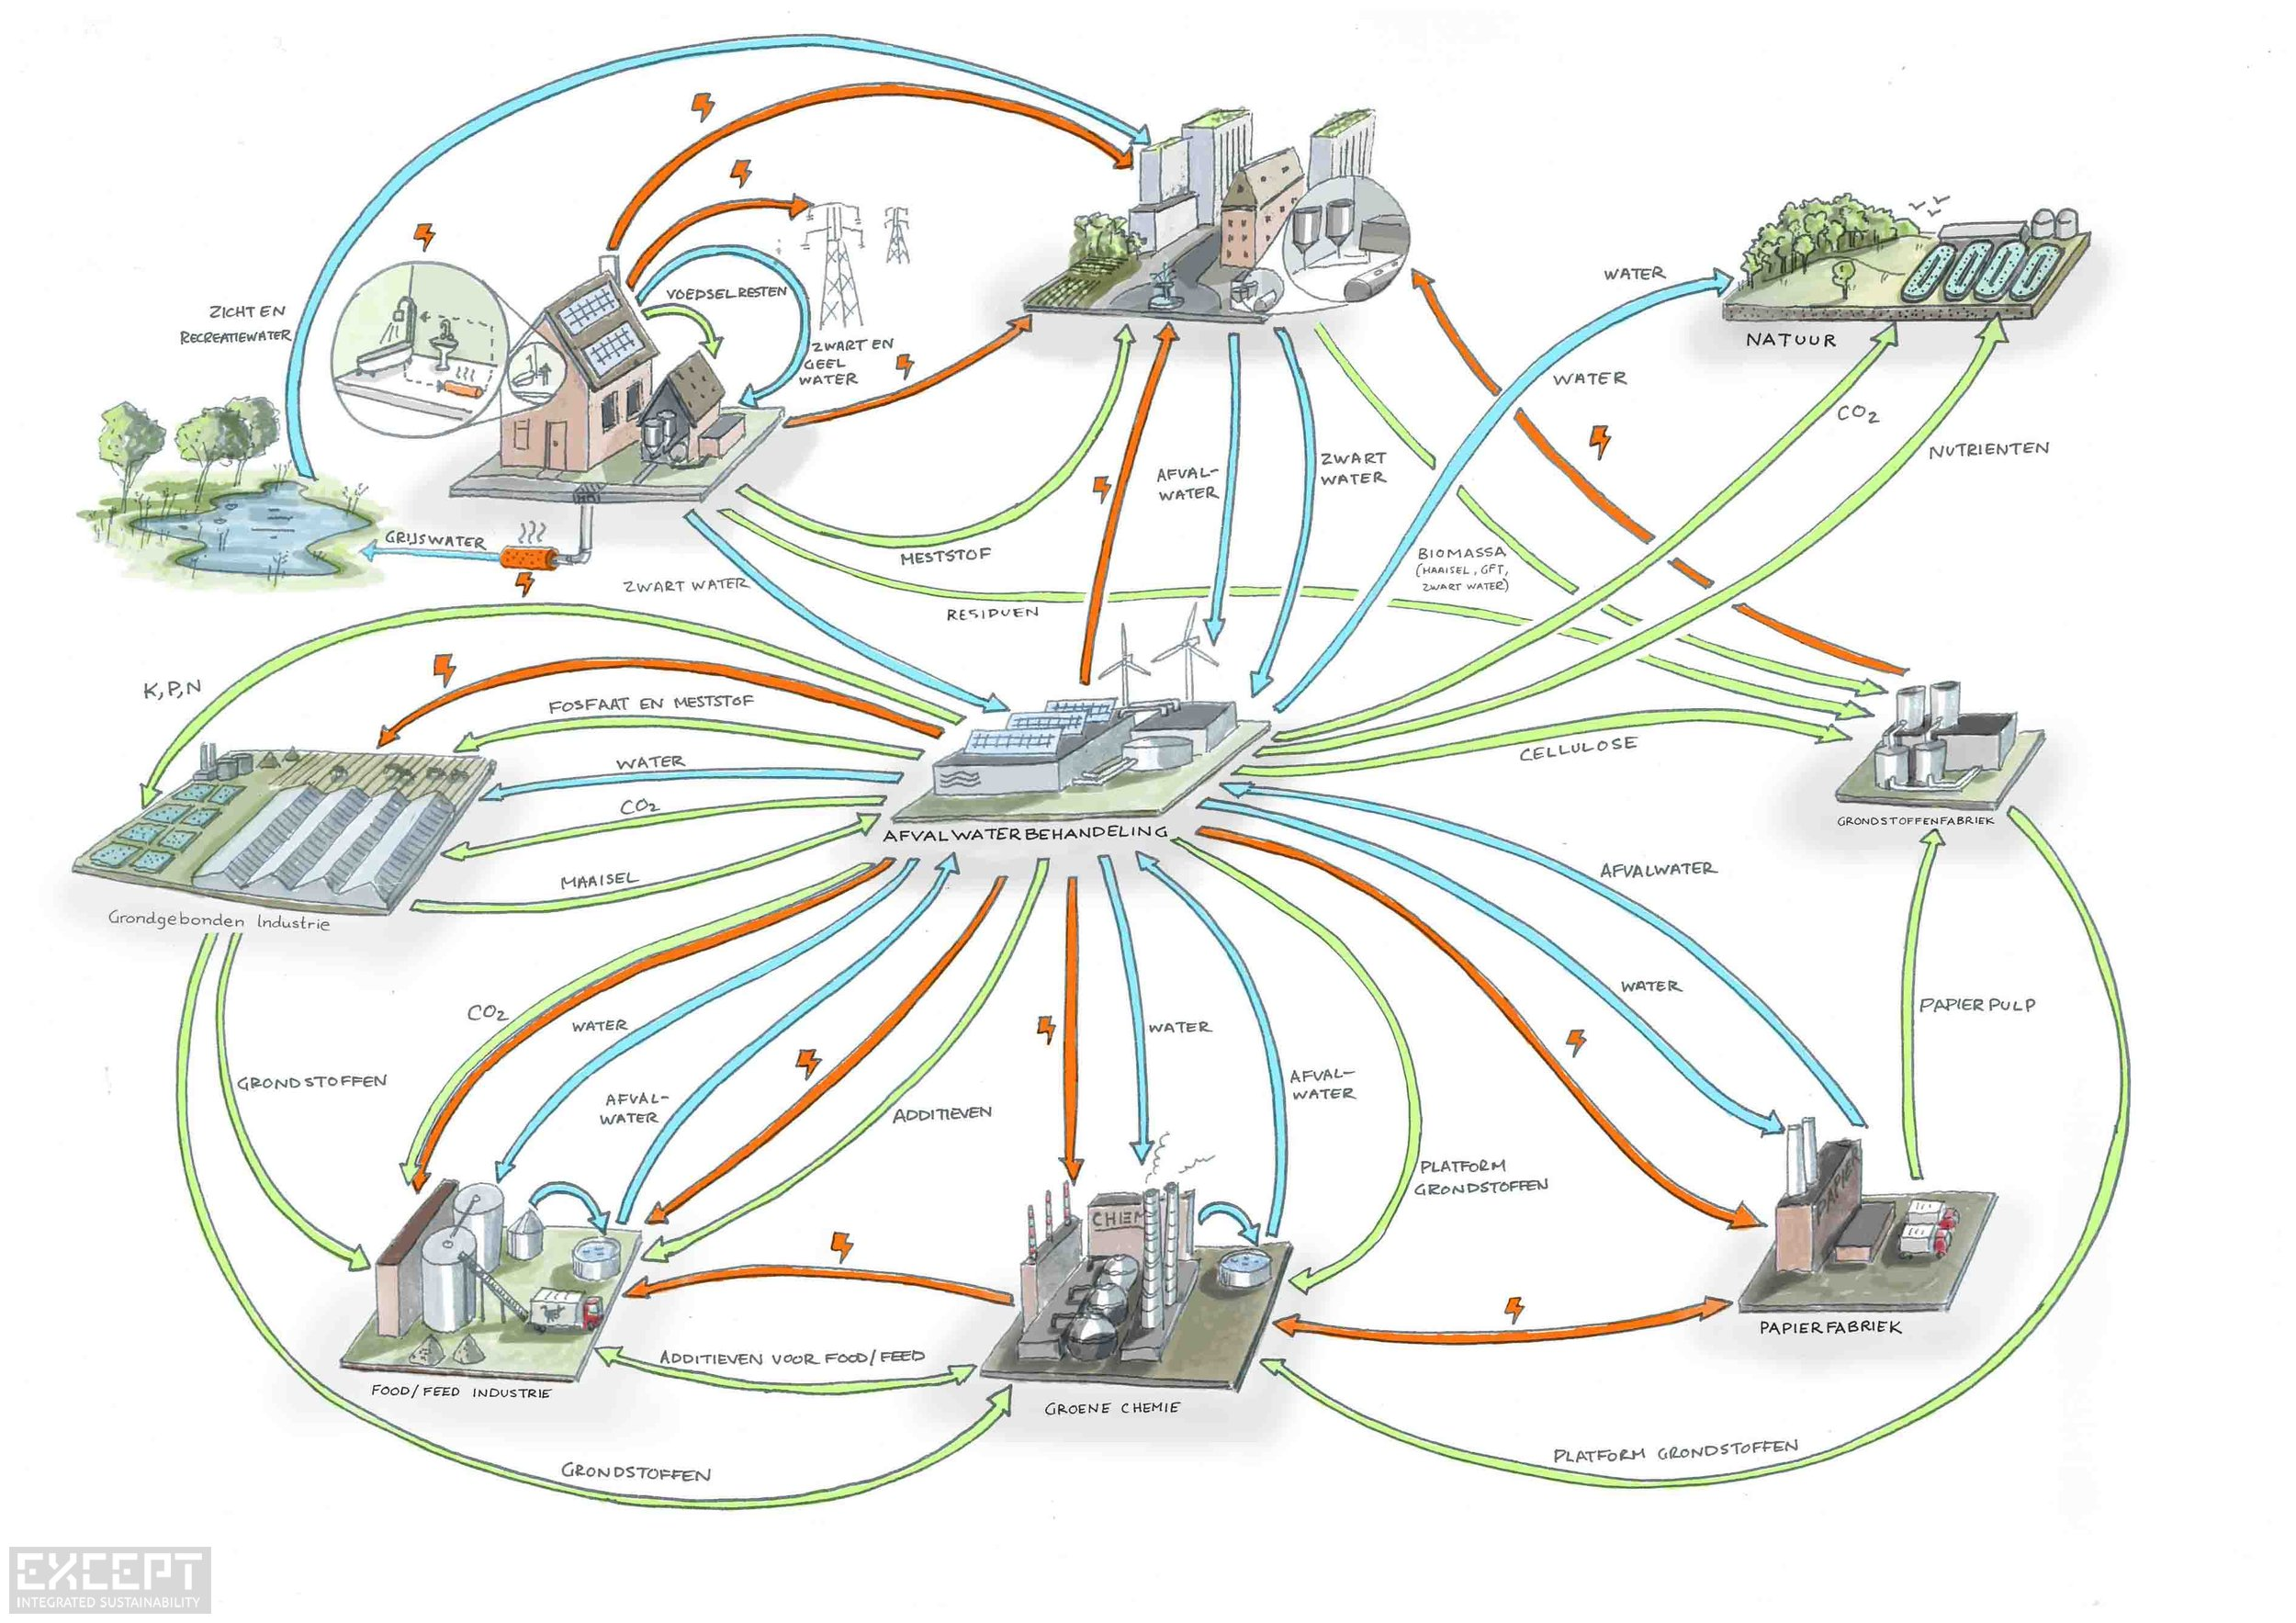 system overview - This overview diagram shows the envisioned relationship that waste water treatment facilities will have with Dutch cities, industry, agriculture, and natural lands.